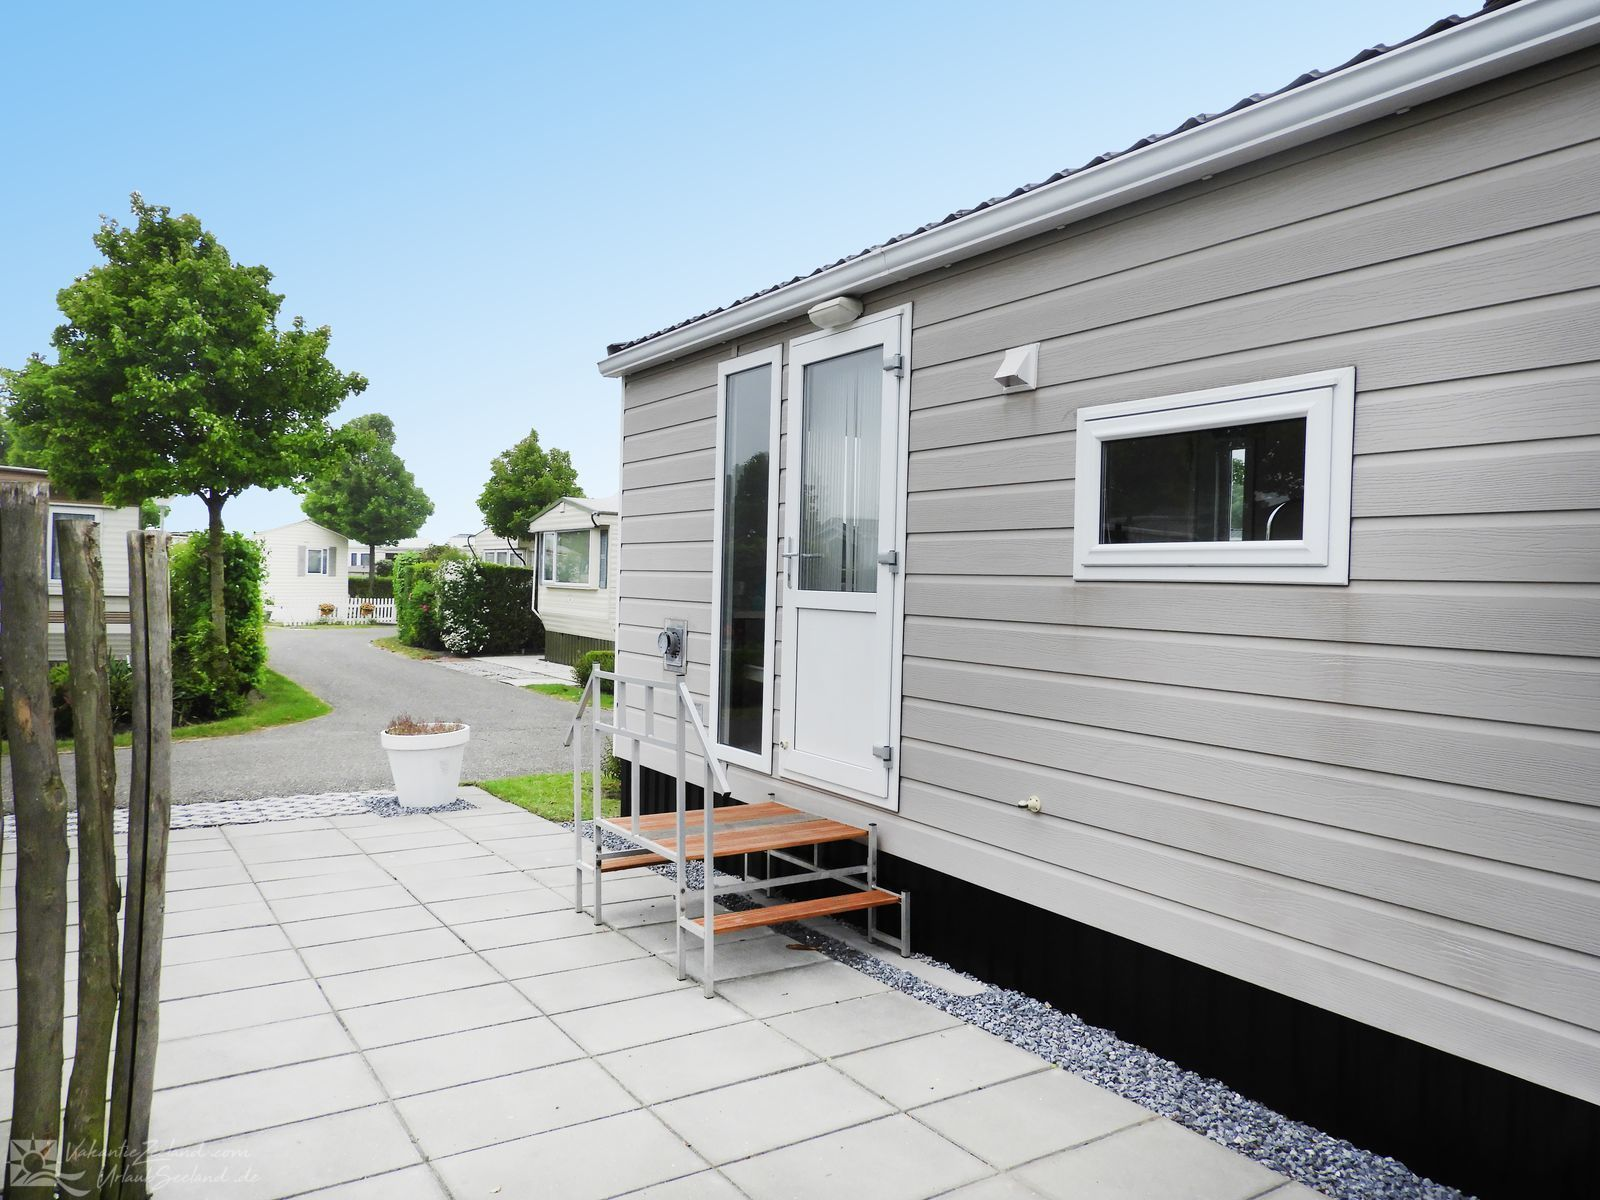 VZ466 Chalet in Renesse